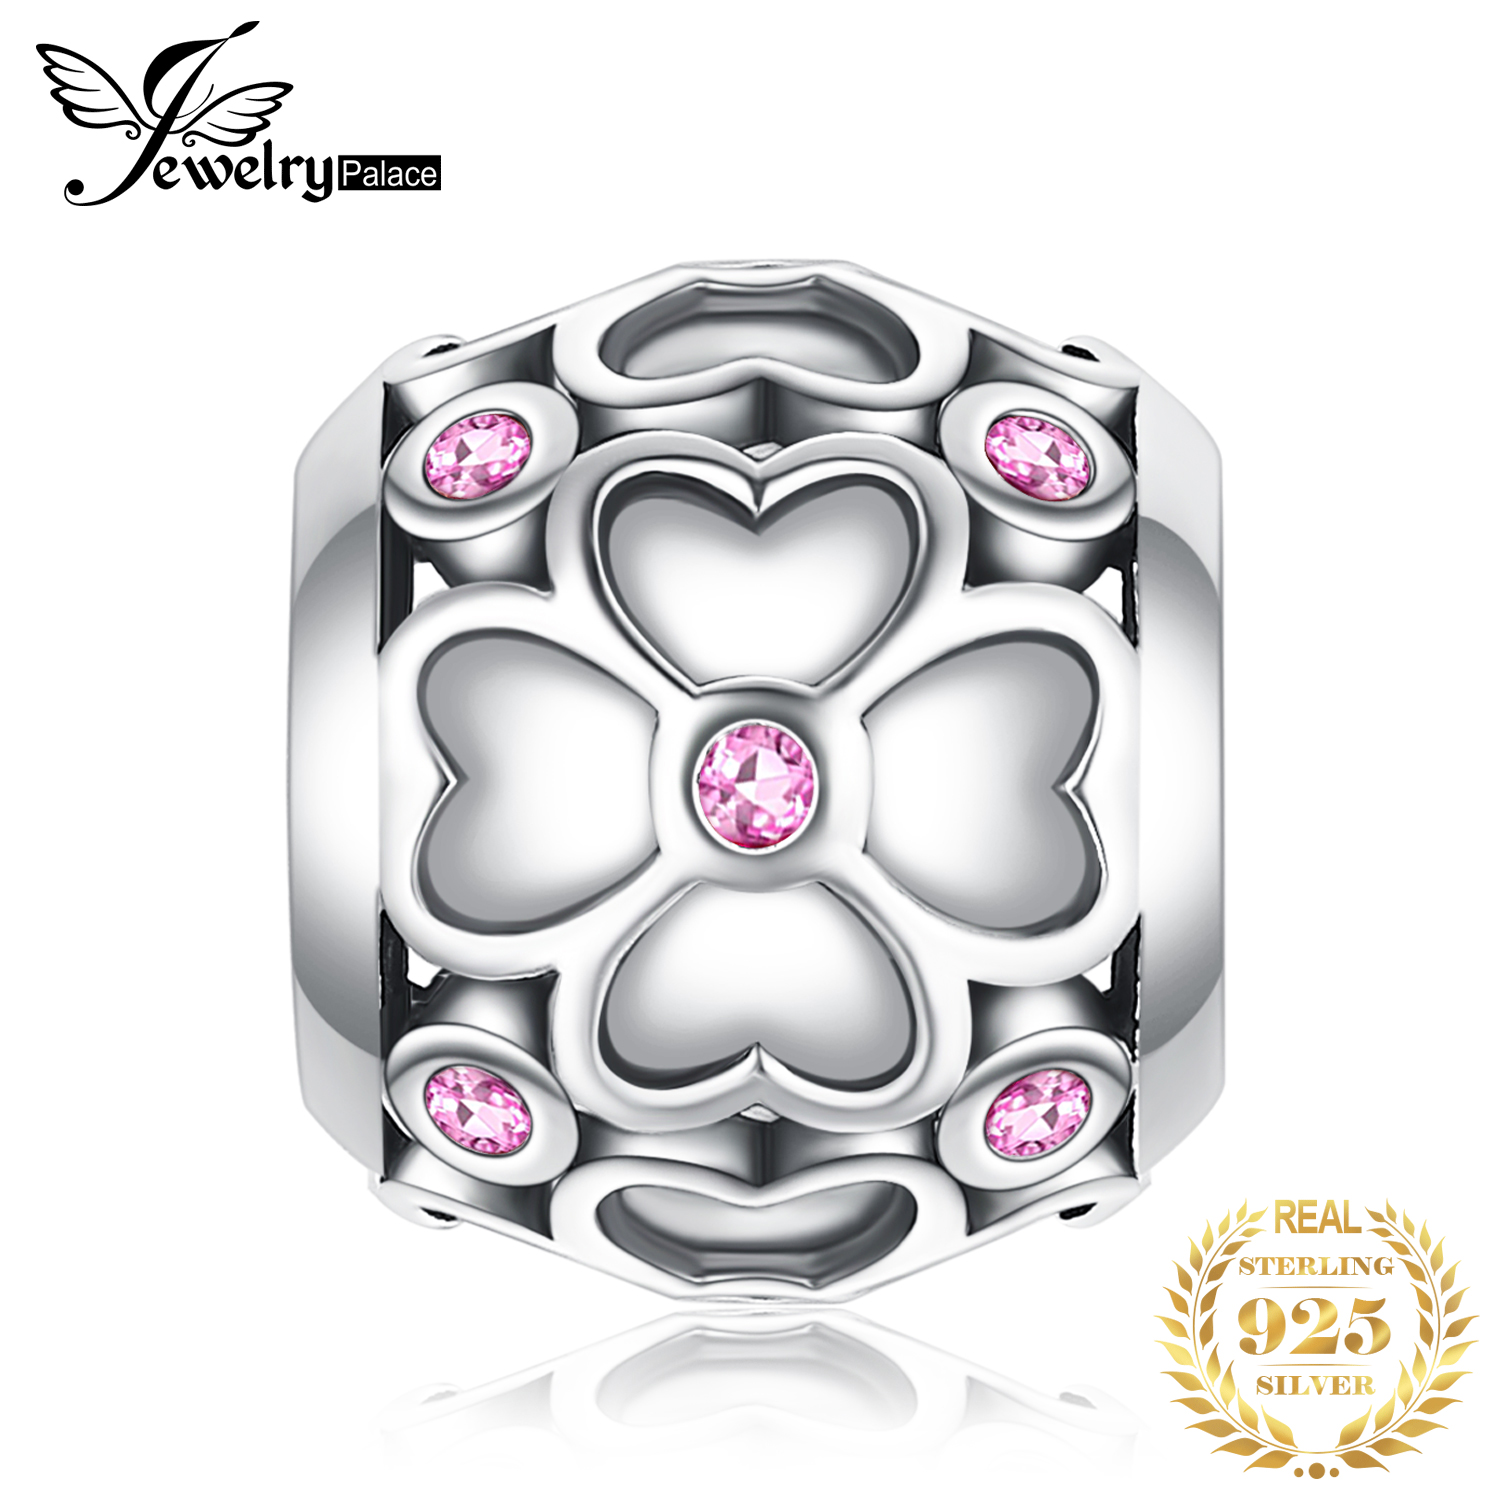 JewelryPalace Clover Flower 925 Sterling Silver Beads Charms Silver 925 Original For Bracelet Silver 925 Original Jewelry Making